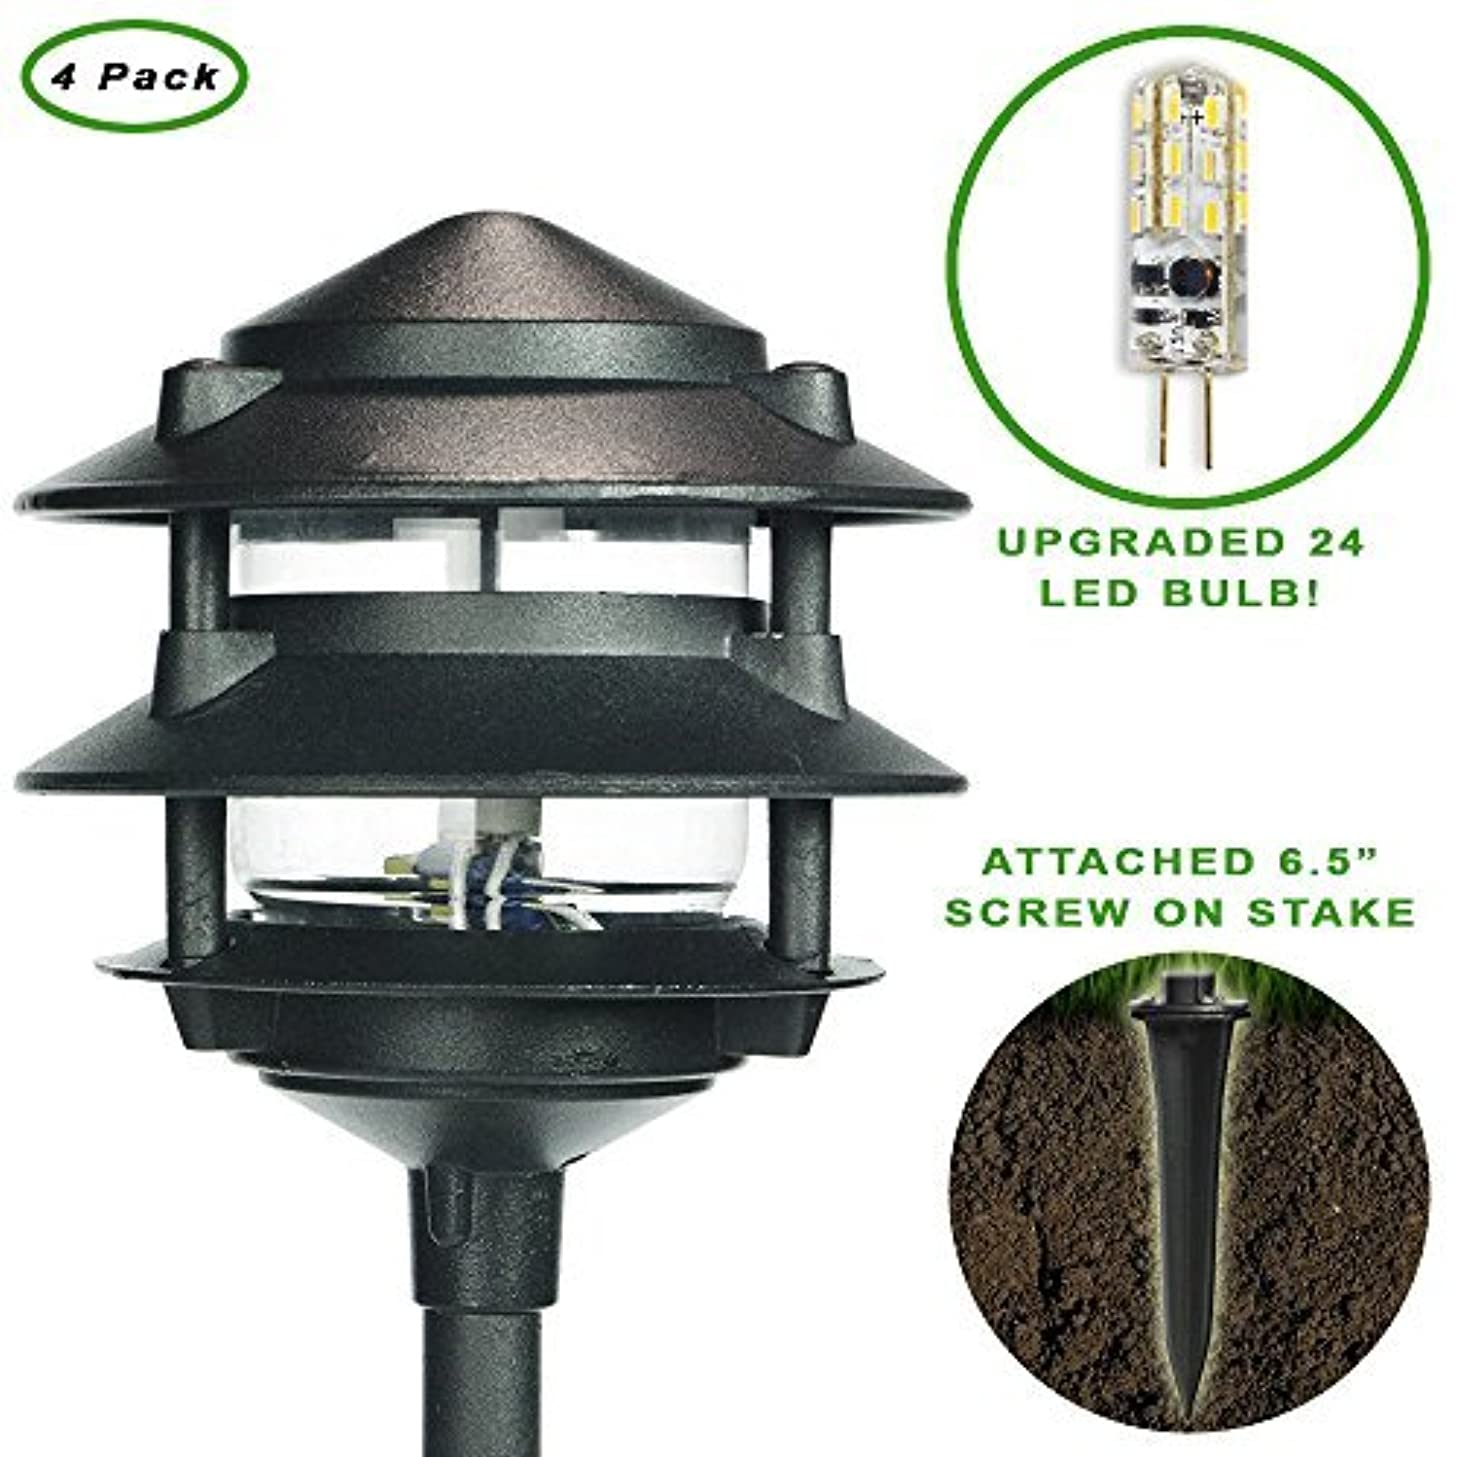 eTopLighting Oil Rubbed Black Outdoor Landscape Ground Spot Light Patio, Garden, Lawn, Path, Driveway APL1297, 4 Pack